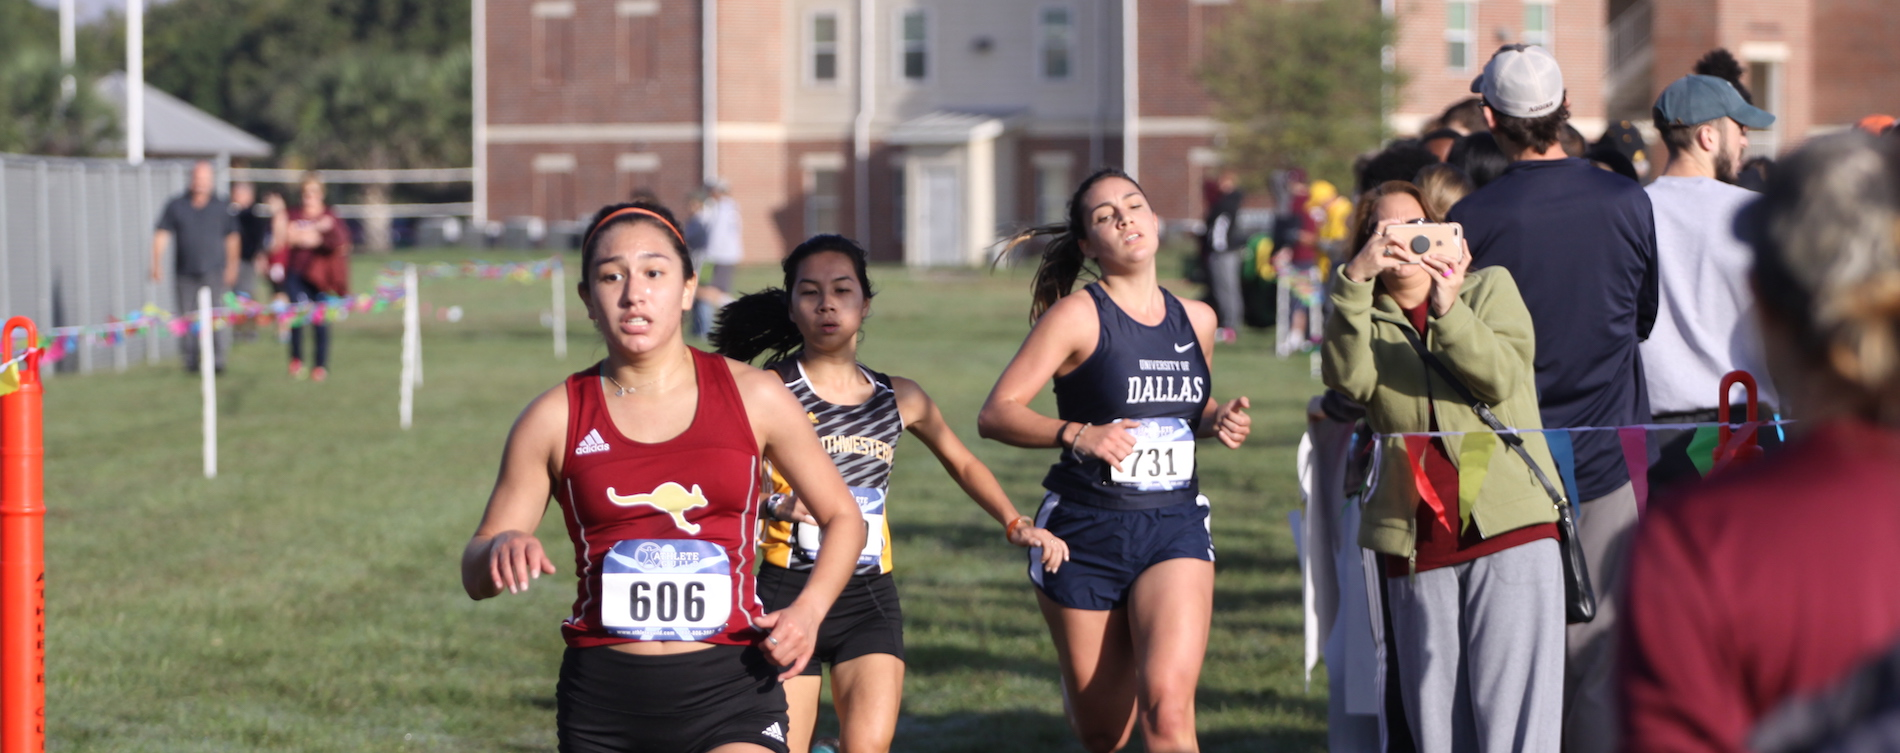 'Roos Place 6th at SCAC Championship Meet